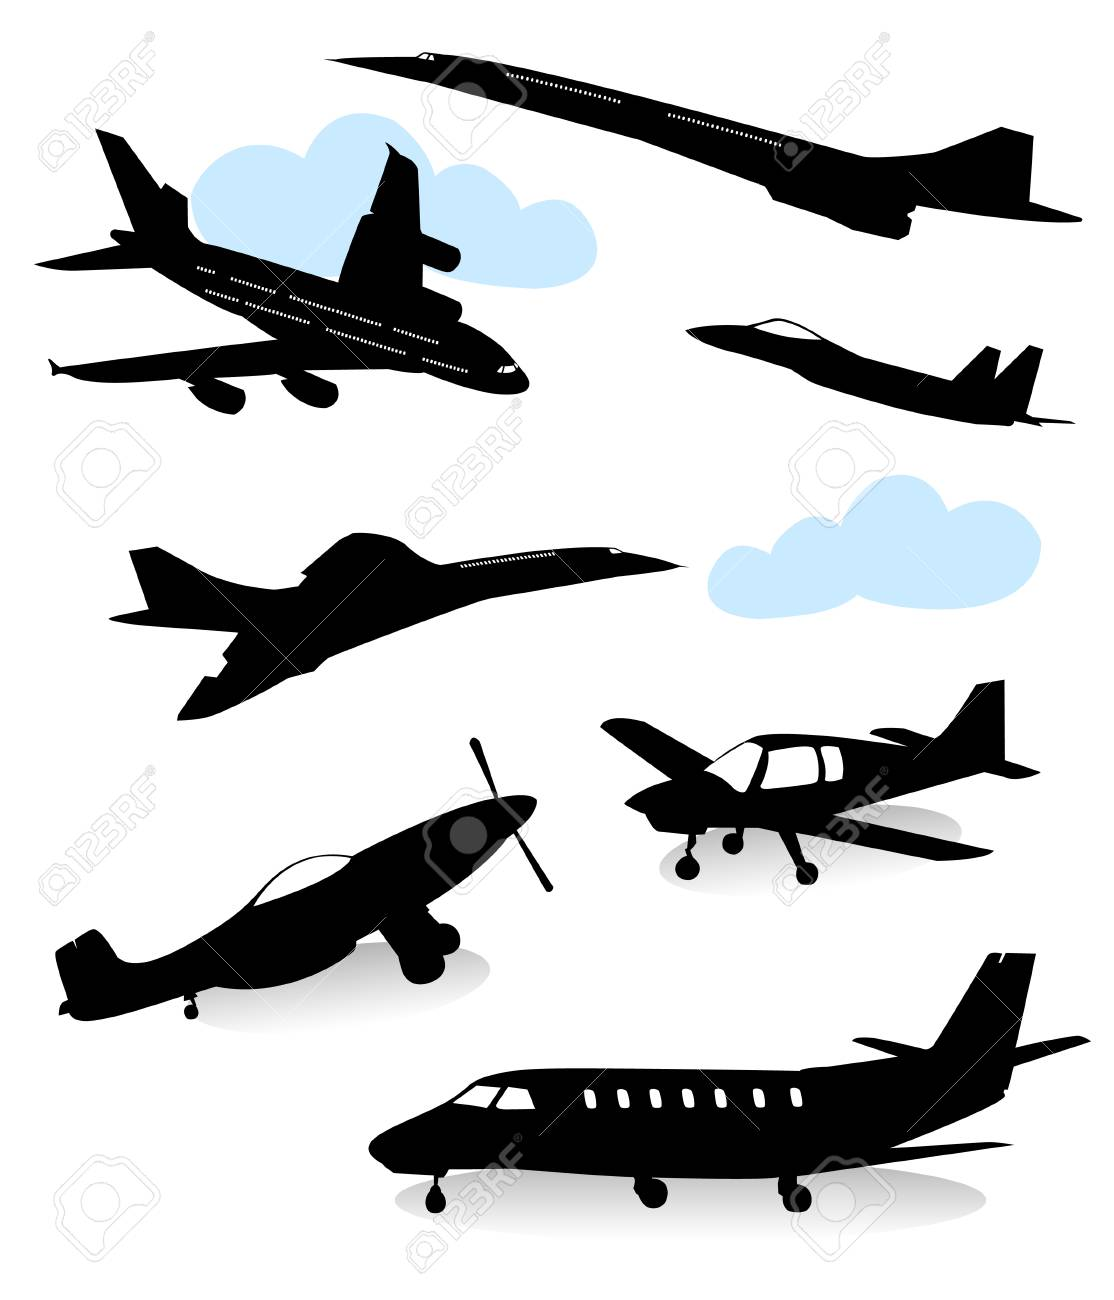 Collection of silhouettes of various planes Stock Vector - 4328908